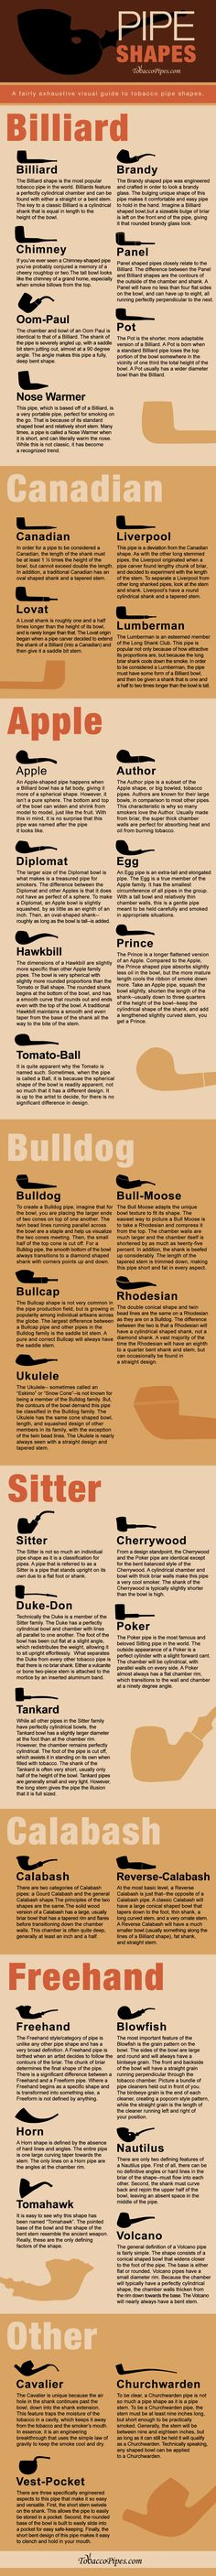 Ever wonder about the shape of one of your pipes? Our Ultimate Guide to Tobacco Pipe Shapes will help. Bookmark it for future reference!